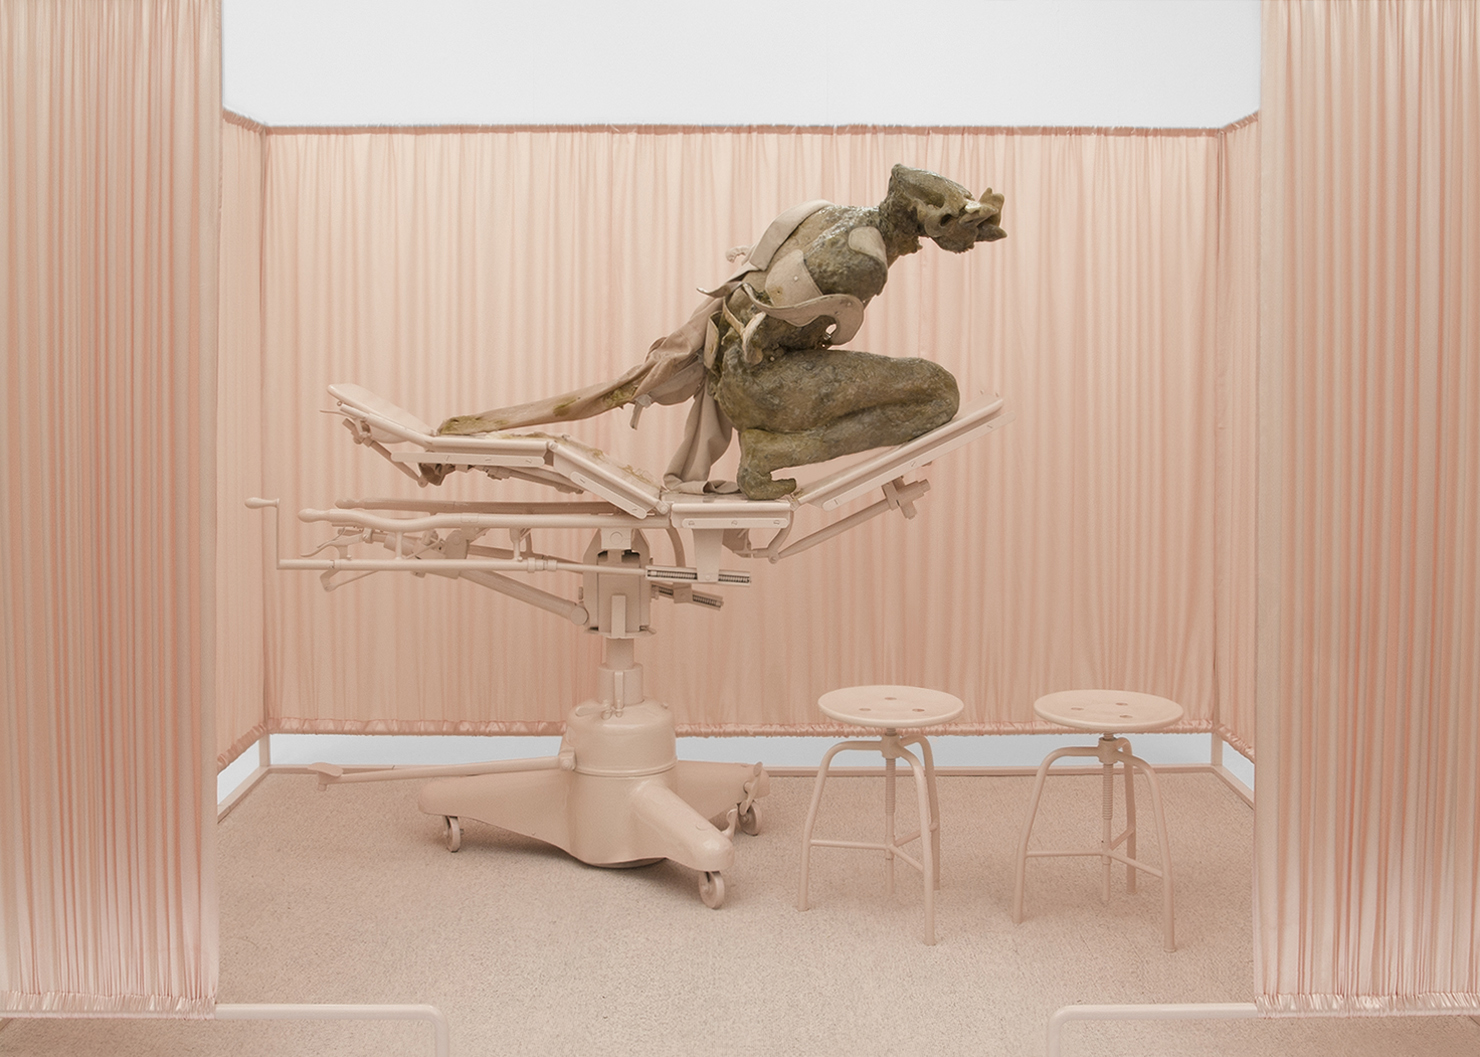 ONANIA / Aetiology Unknown 02 / 2012 / 300 x 200 x 190 cm  fat, leather, fur, cosmetics, fabric, polyvinyl acetate, enamel,  steel, surgical table and accessories